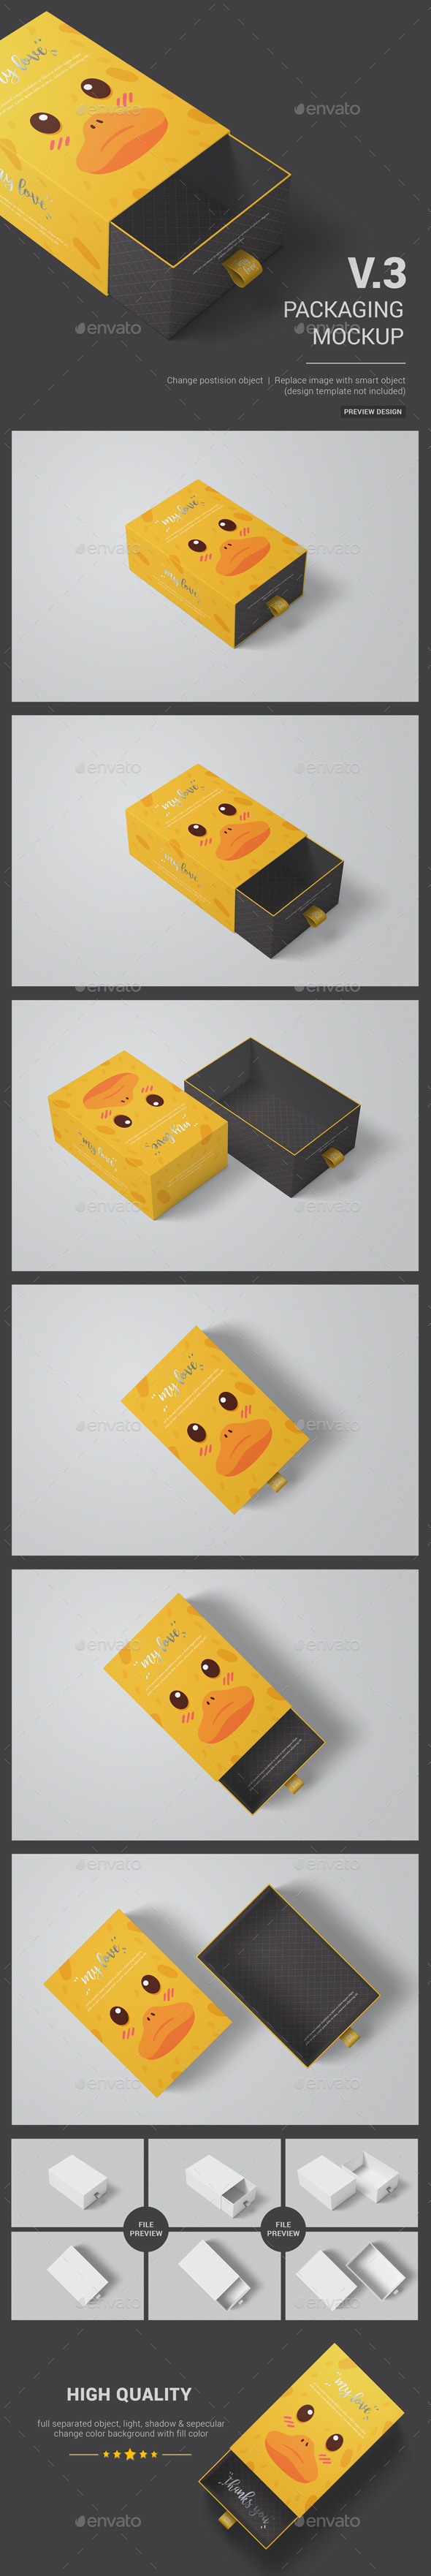 GraphicRiver Sliding Box Packaging Package Mockup 03 20832613